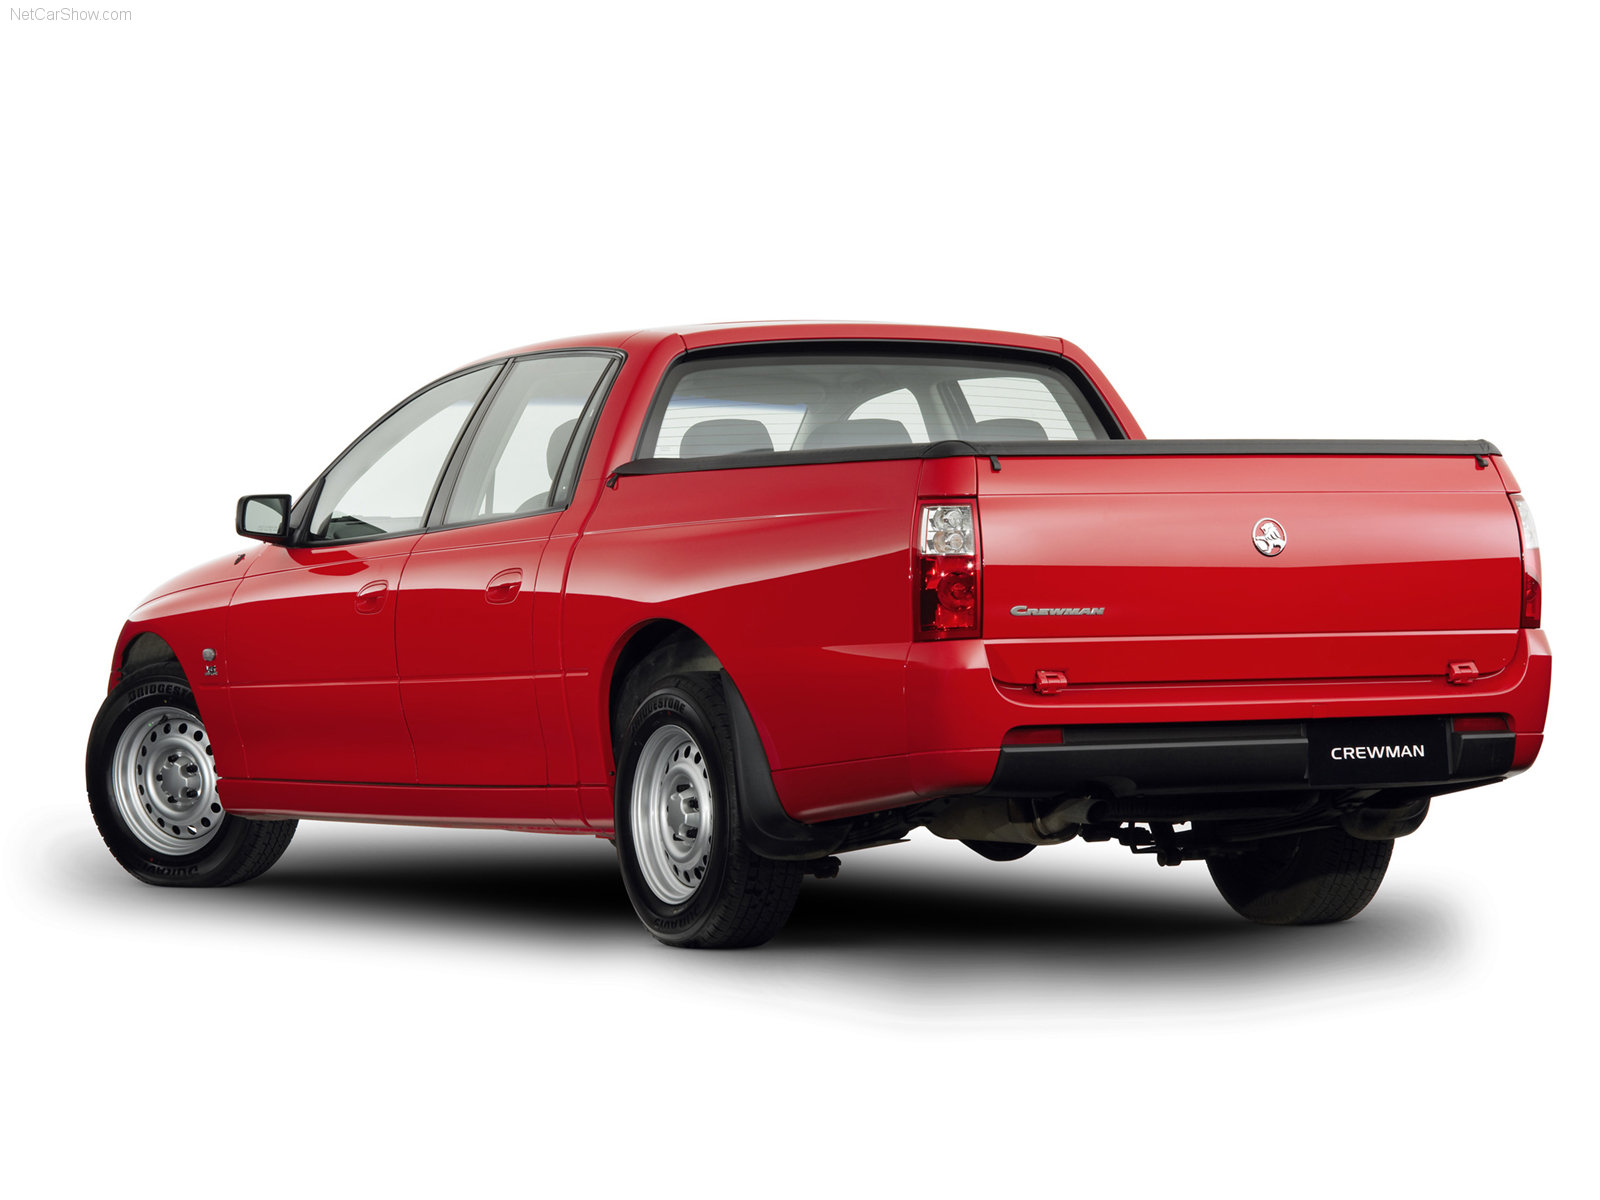 Holden VZ Crewman photos - PhotoGallery with 12 pics ...